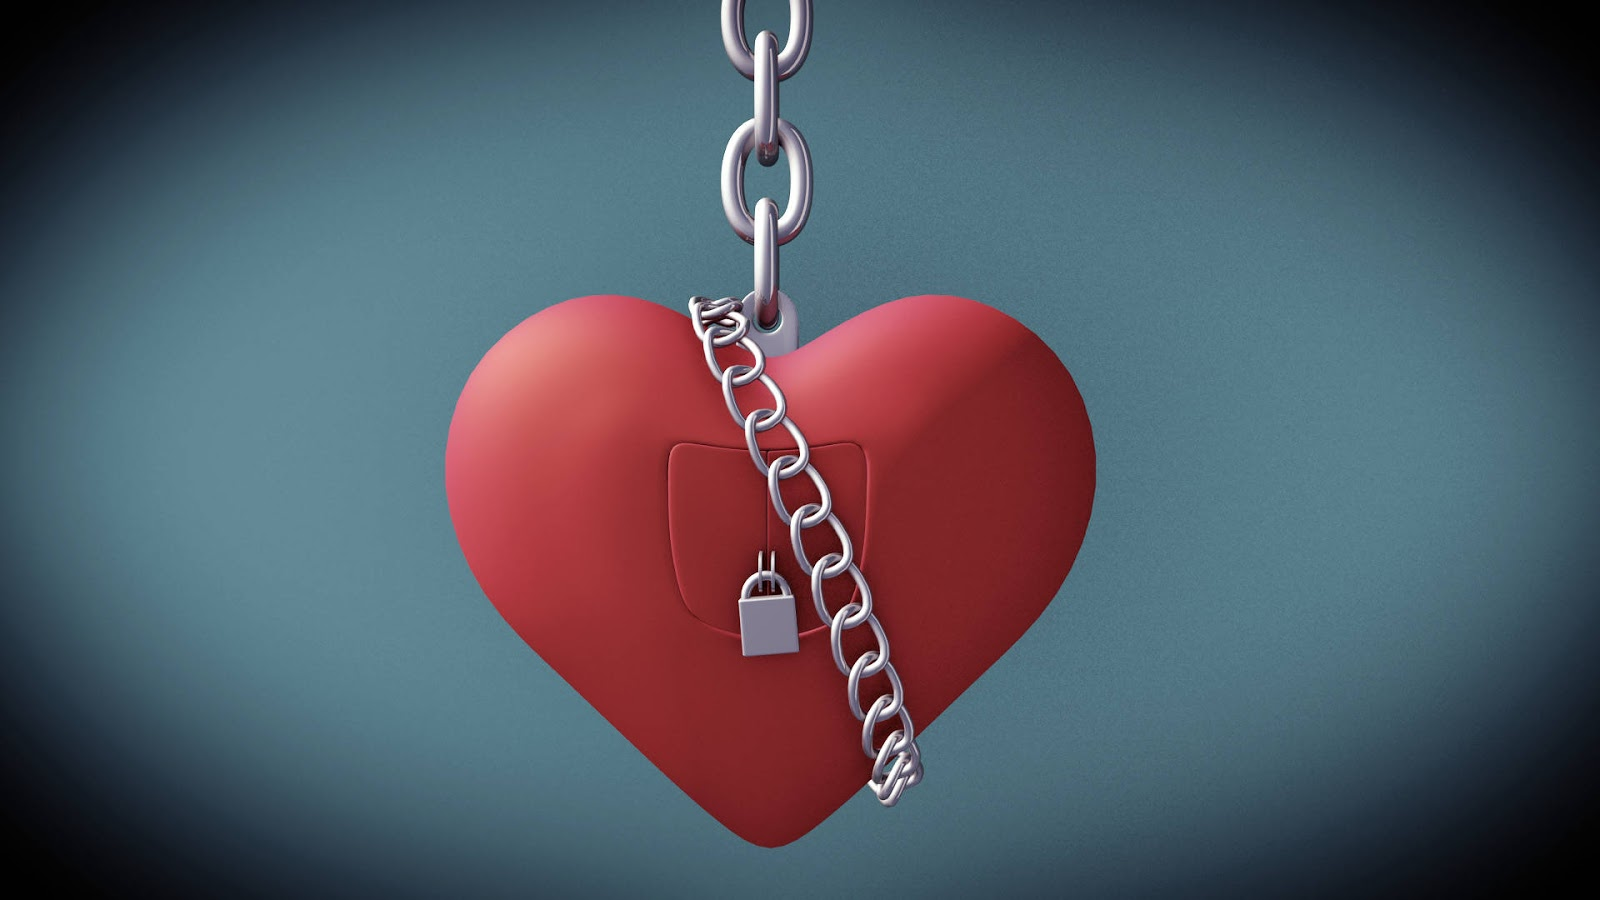 Red Lock Heart